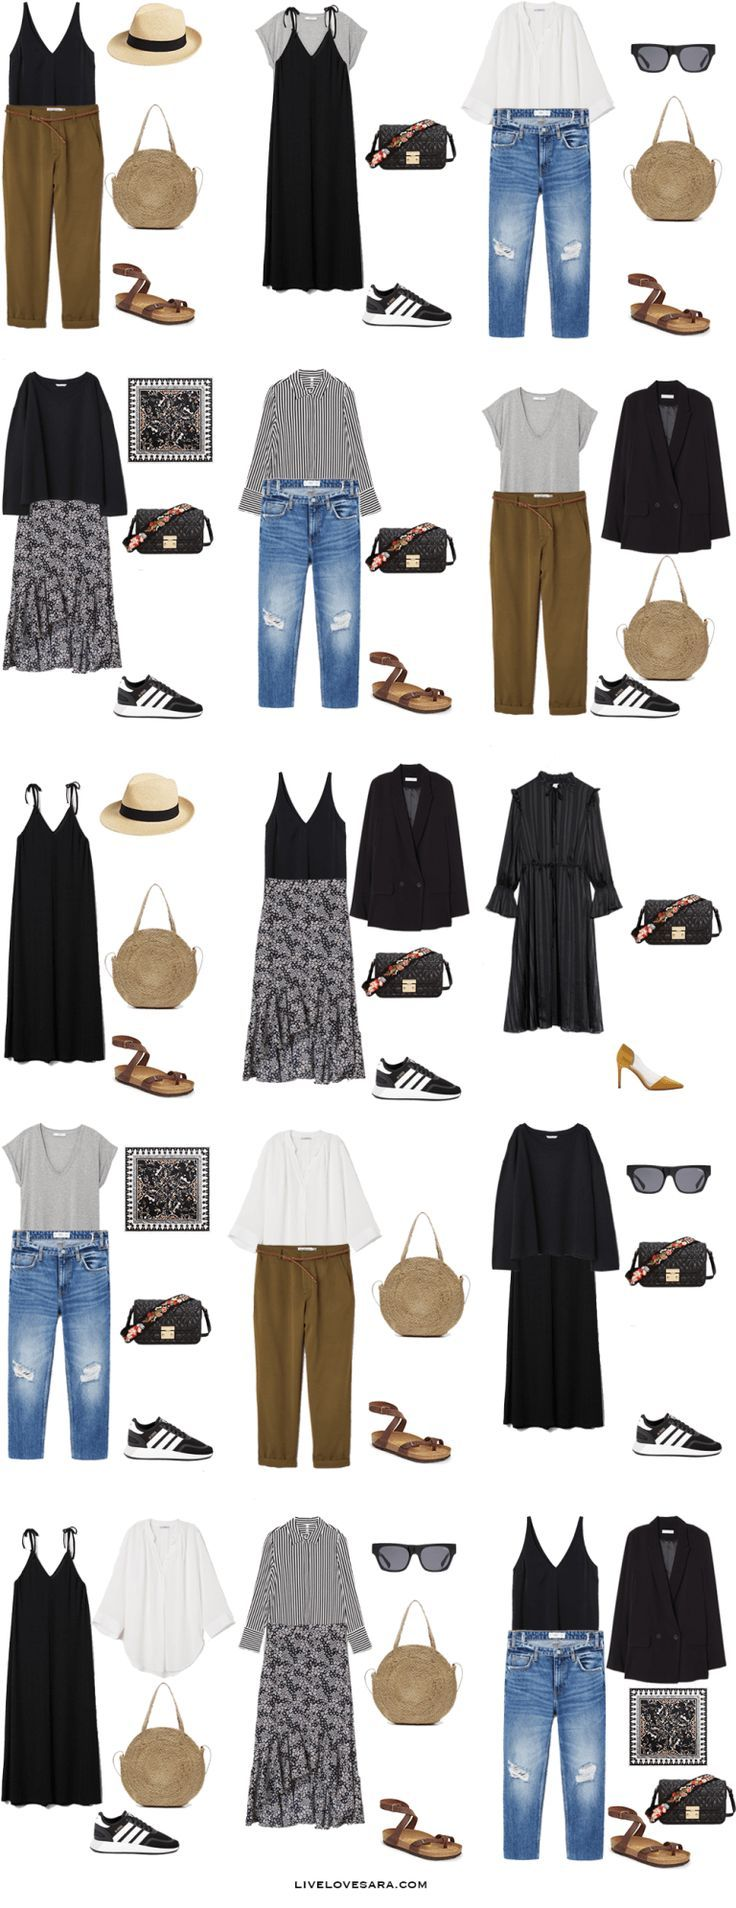 If you are wondering what to pack for Saint Petersburg, Russia in the summer time for 7 days, you can see some ideas here. What to Pack for Russia Packing Light List | What to pack for Saint Petersburg l | What to Pack for summer | Packing Light | Packing List | Travel Light | Travel Wardrobe | Travel Capsule | Capsule | #travelwardrobesummer